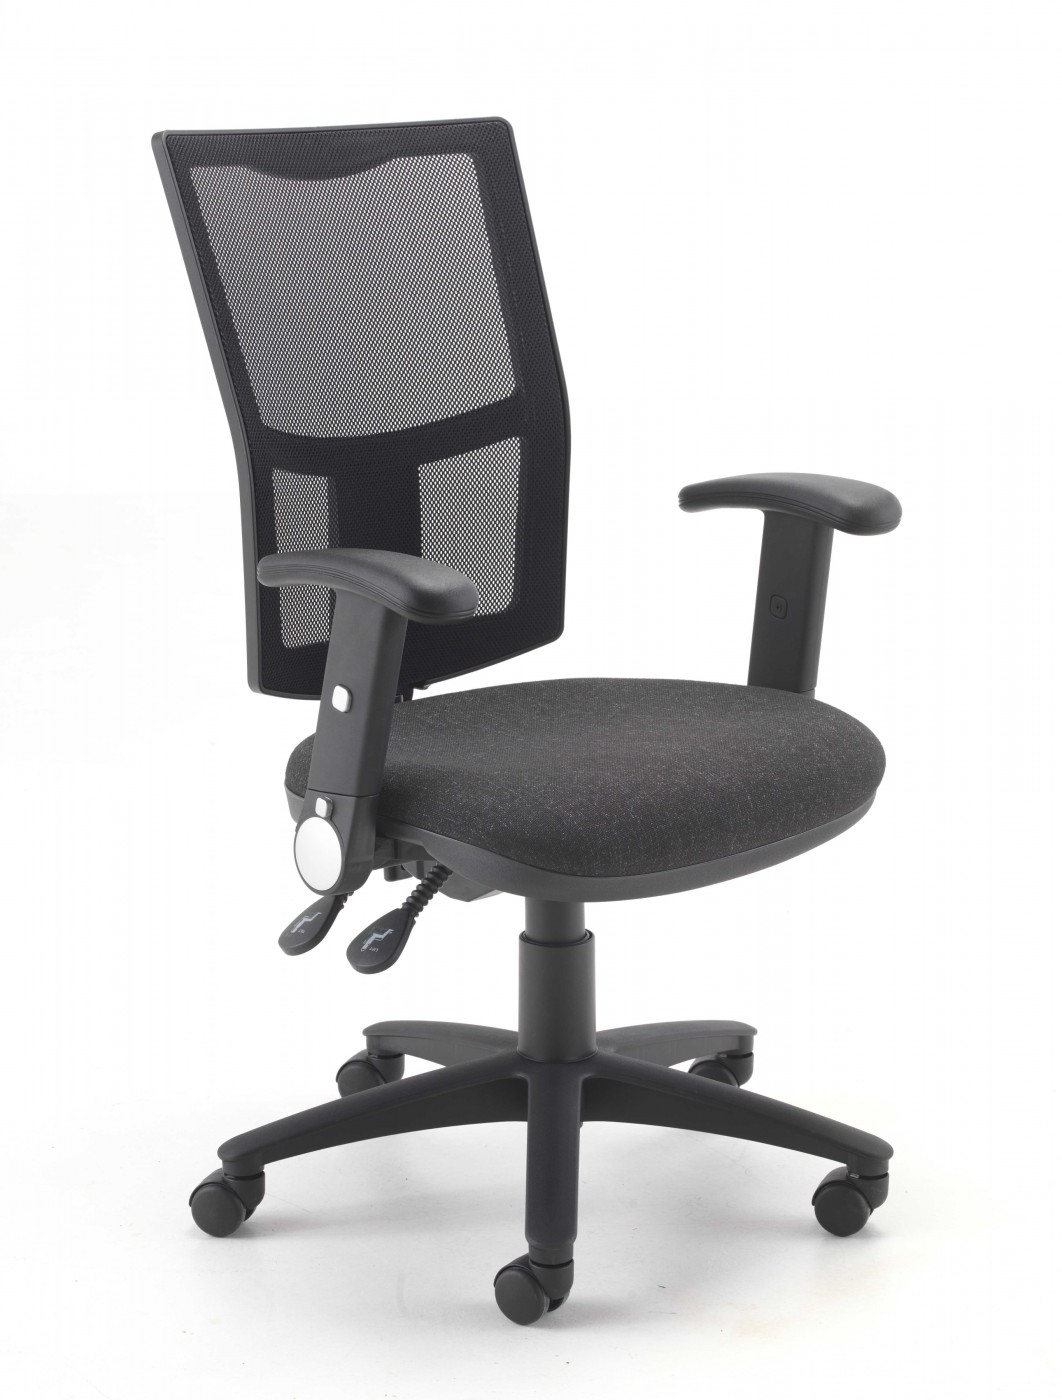 Foldable Office Chair Tc Mesh Office Chair Ch2803 43ac1082 121 Office Furniture